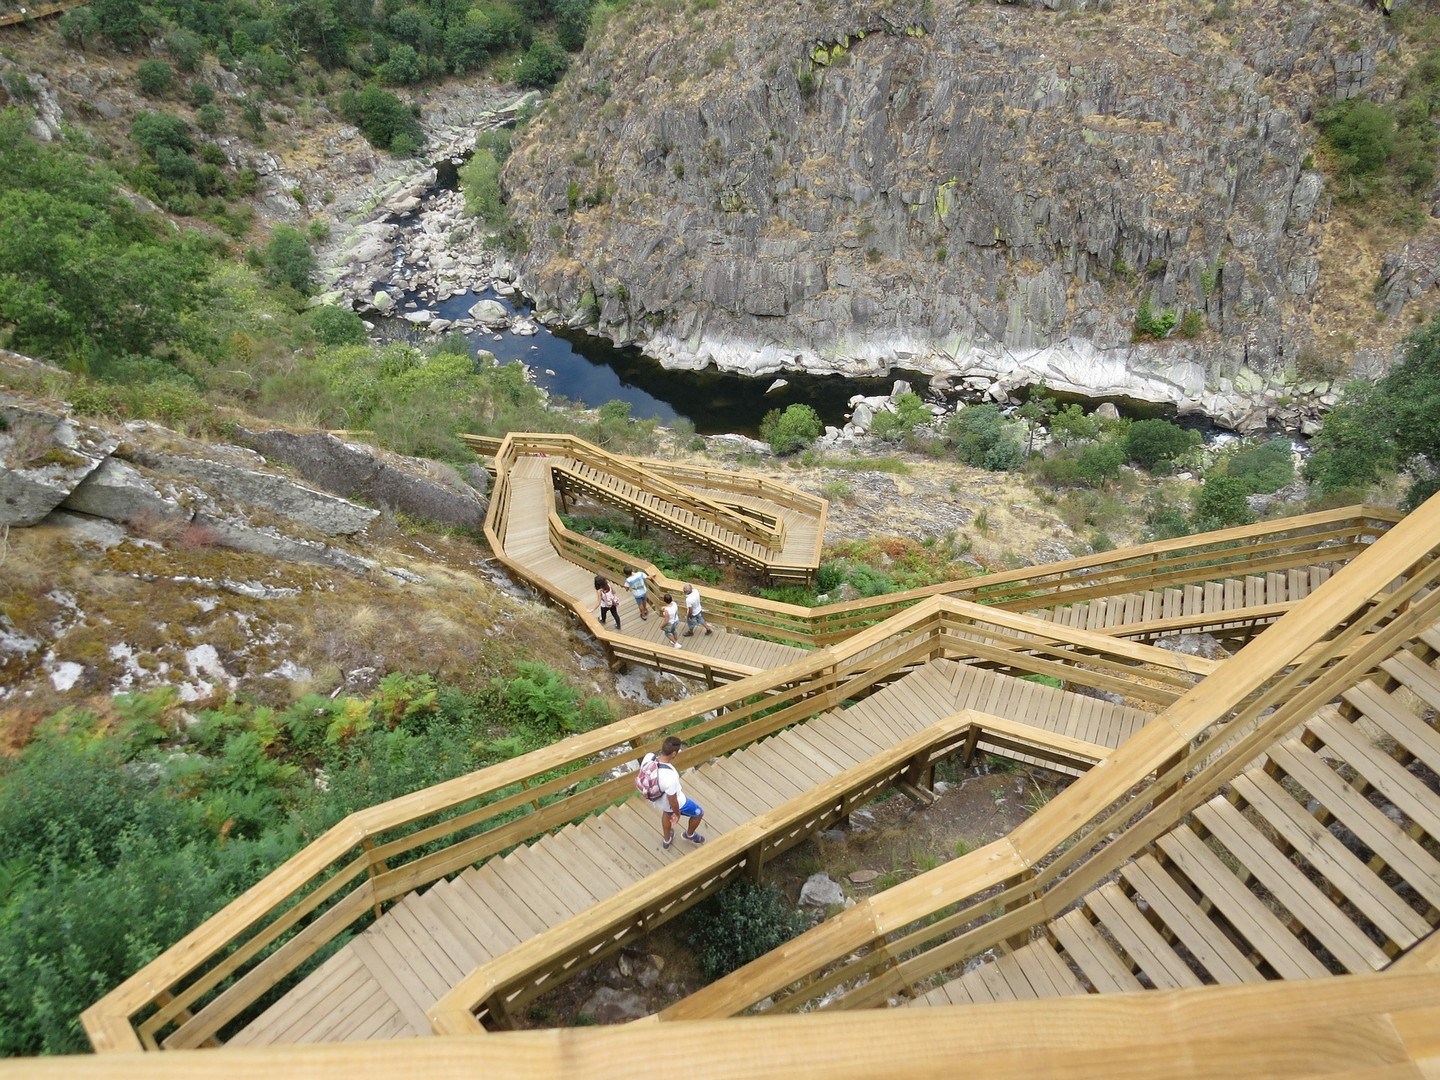 Paiva walkways